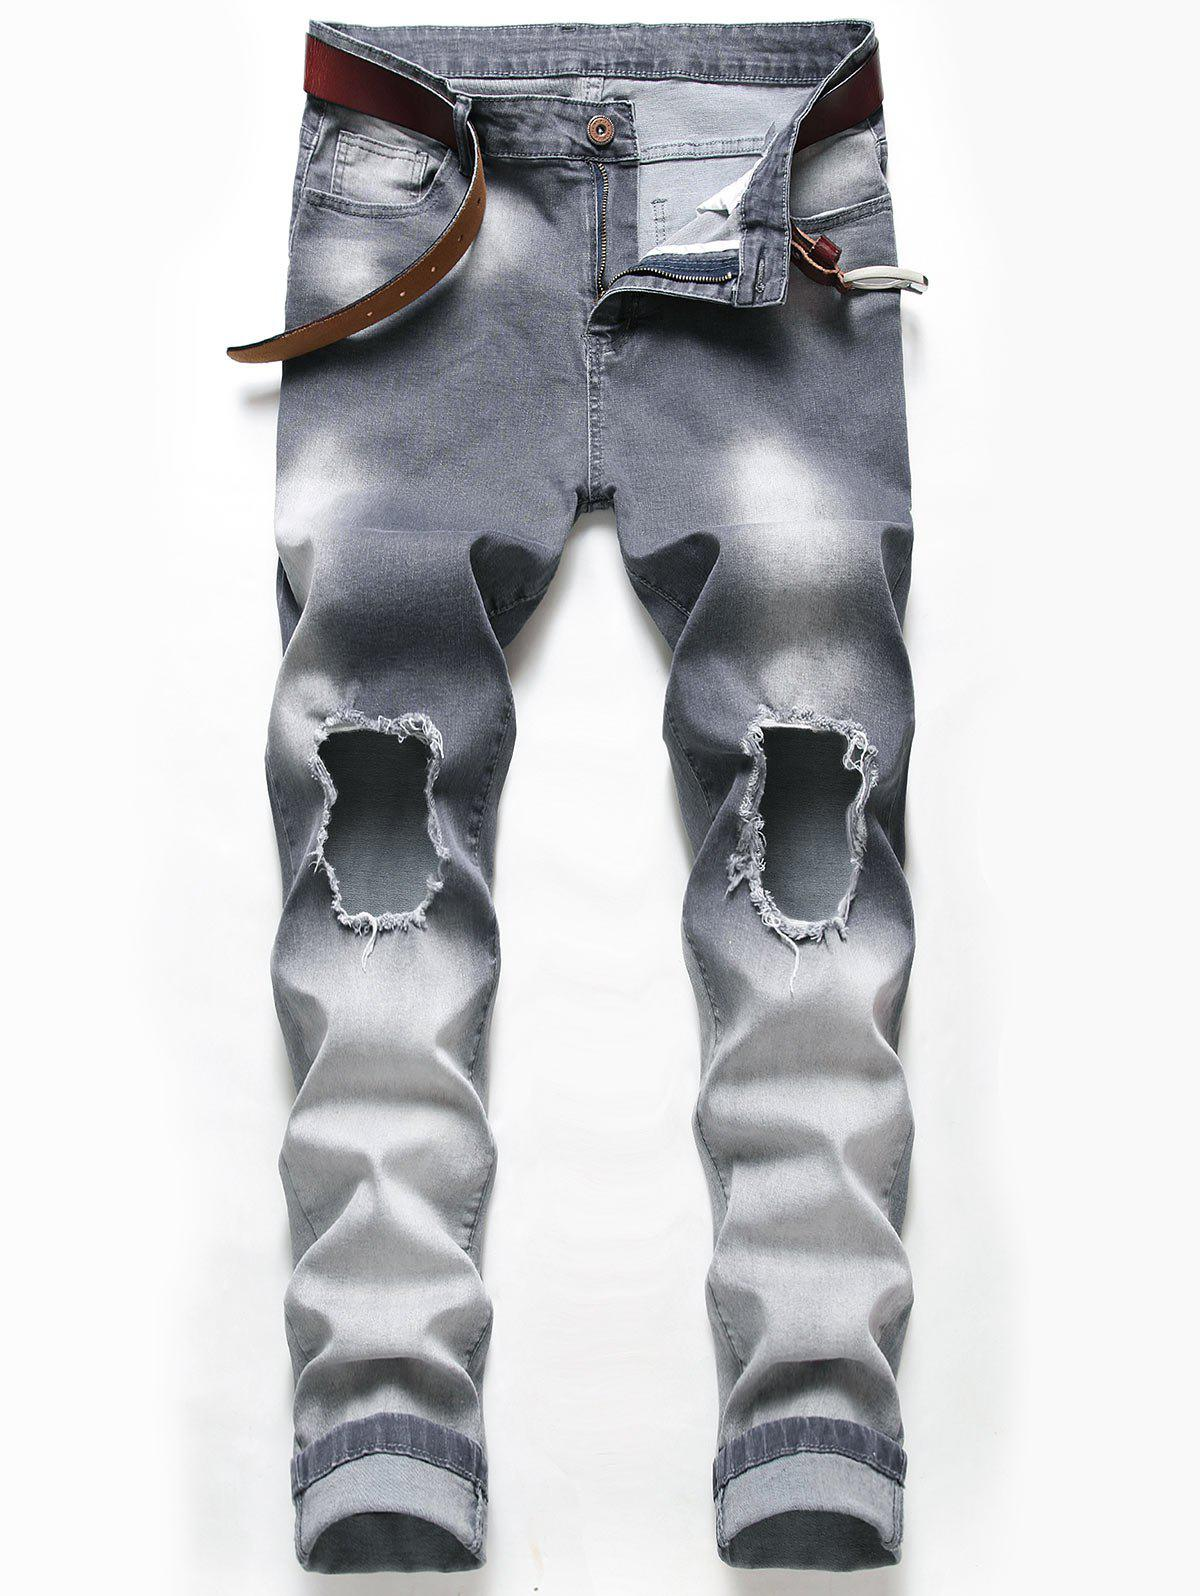 Distressed Ripped Faded Wash Jeans - CARBON GRAY 34